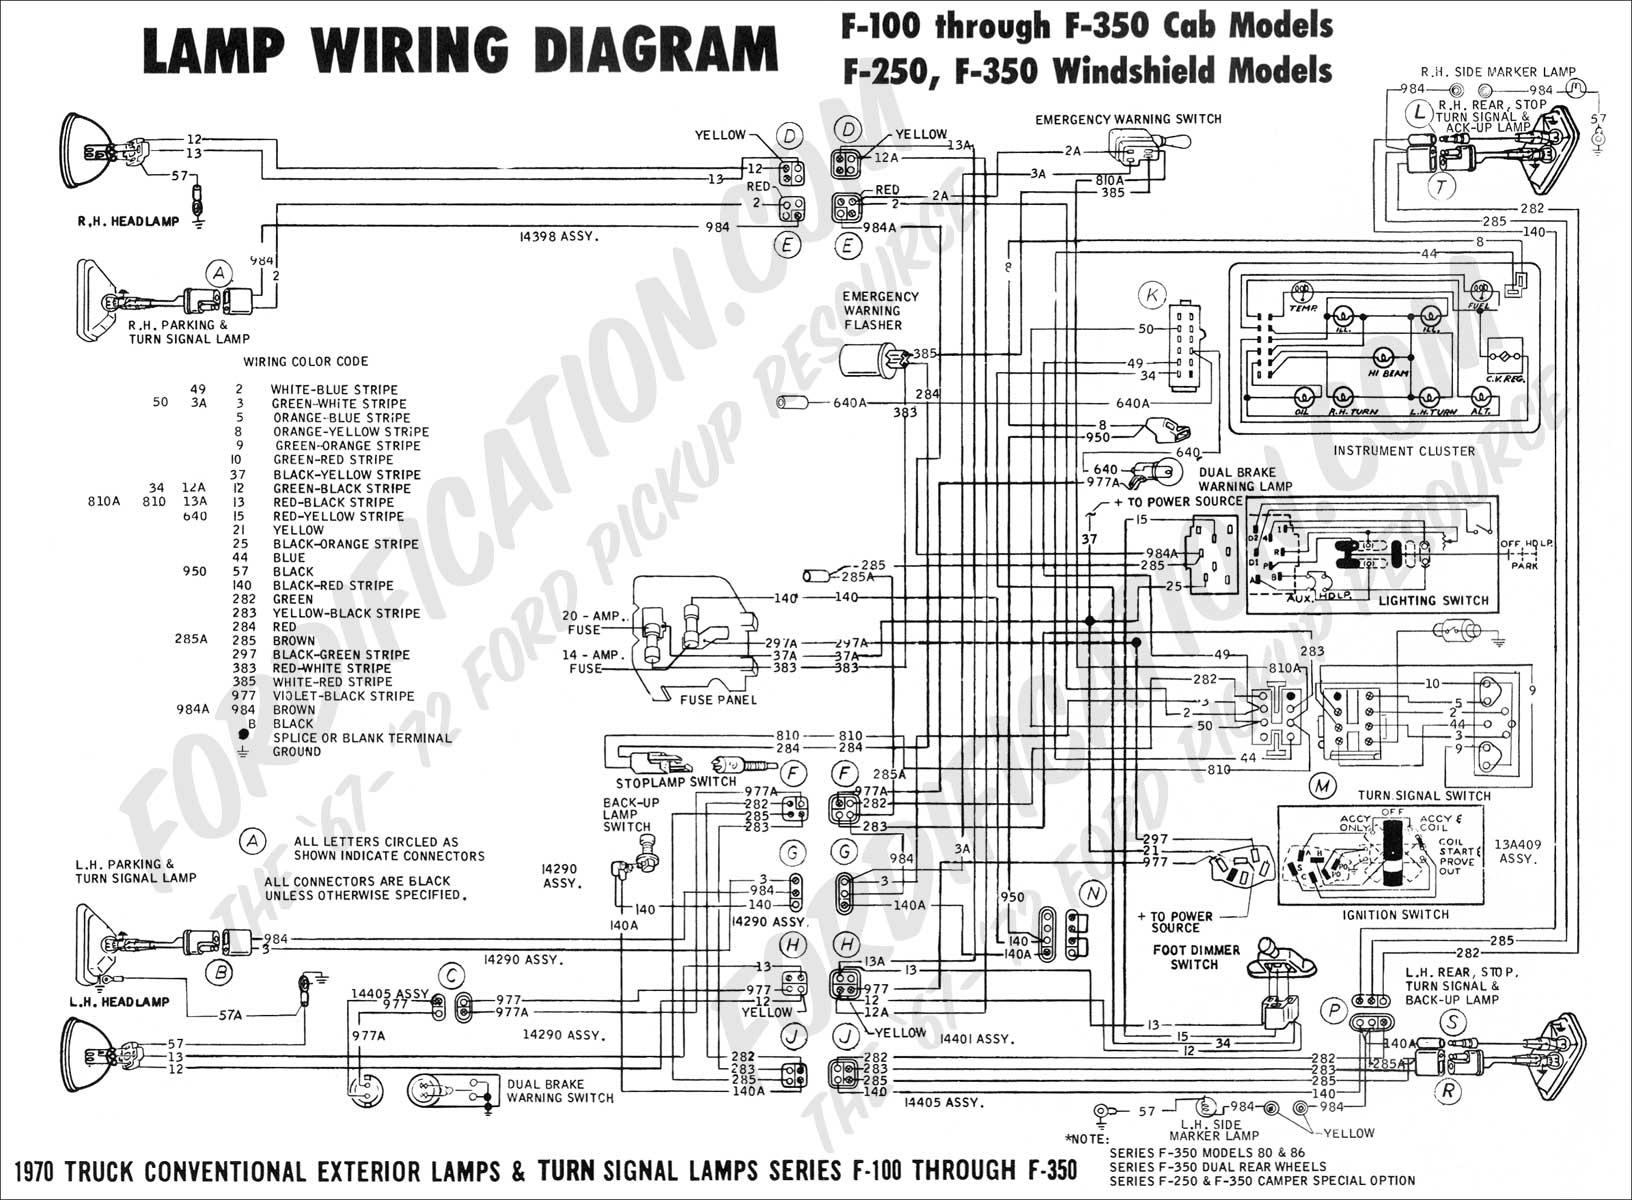 wiring diagram_70ext lights01?resized665%2C489 supermiller wiring diagrams wiring schematics \u2022 wiring diagrams 98 Peterbilt 379 Wiring Diagram at nearapp.co